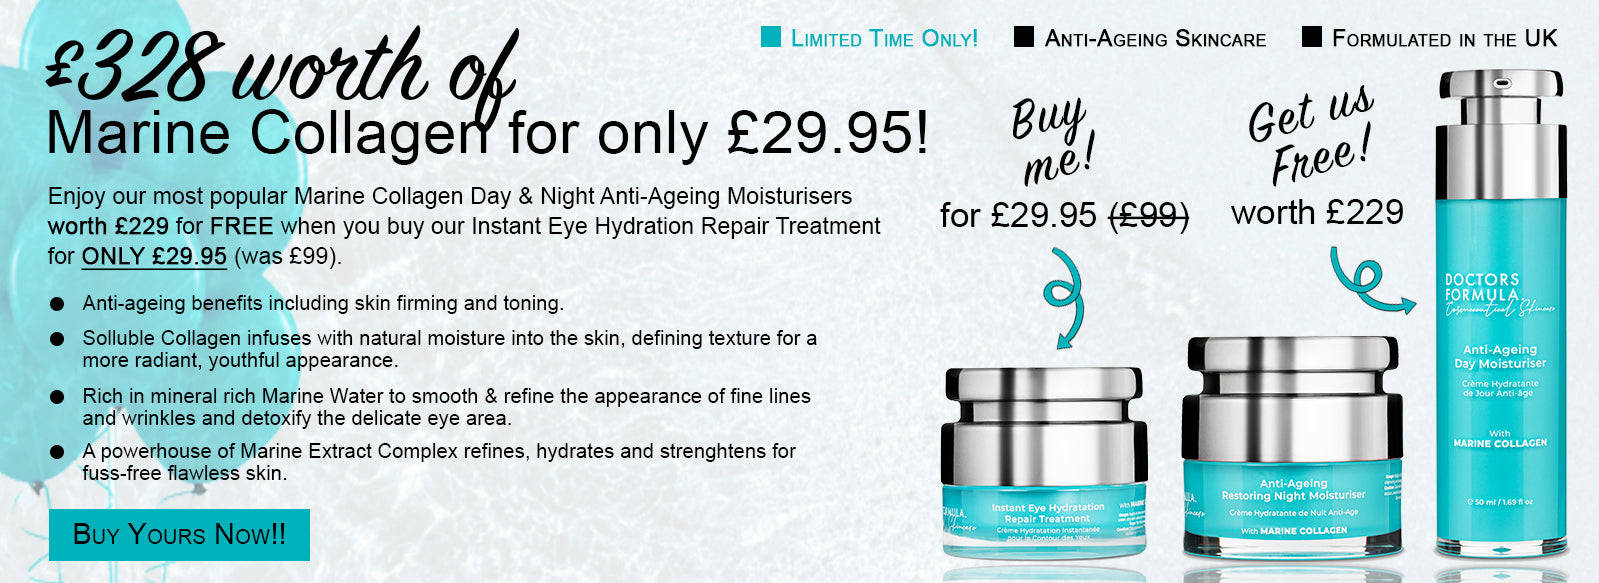 Doctors Formula Eye Hydration Treatment | Skincare | Beauty | Offer | Anti-Ageing | Marine Collagen